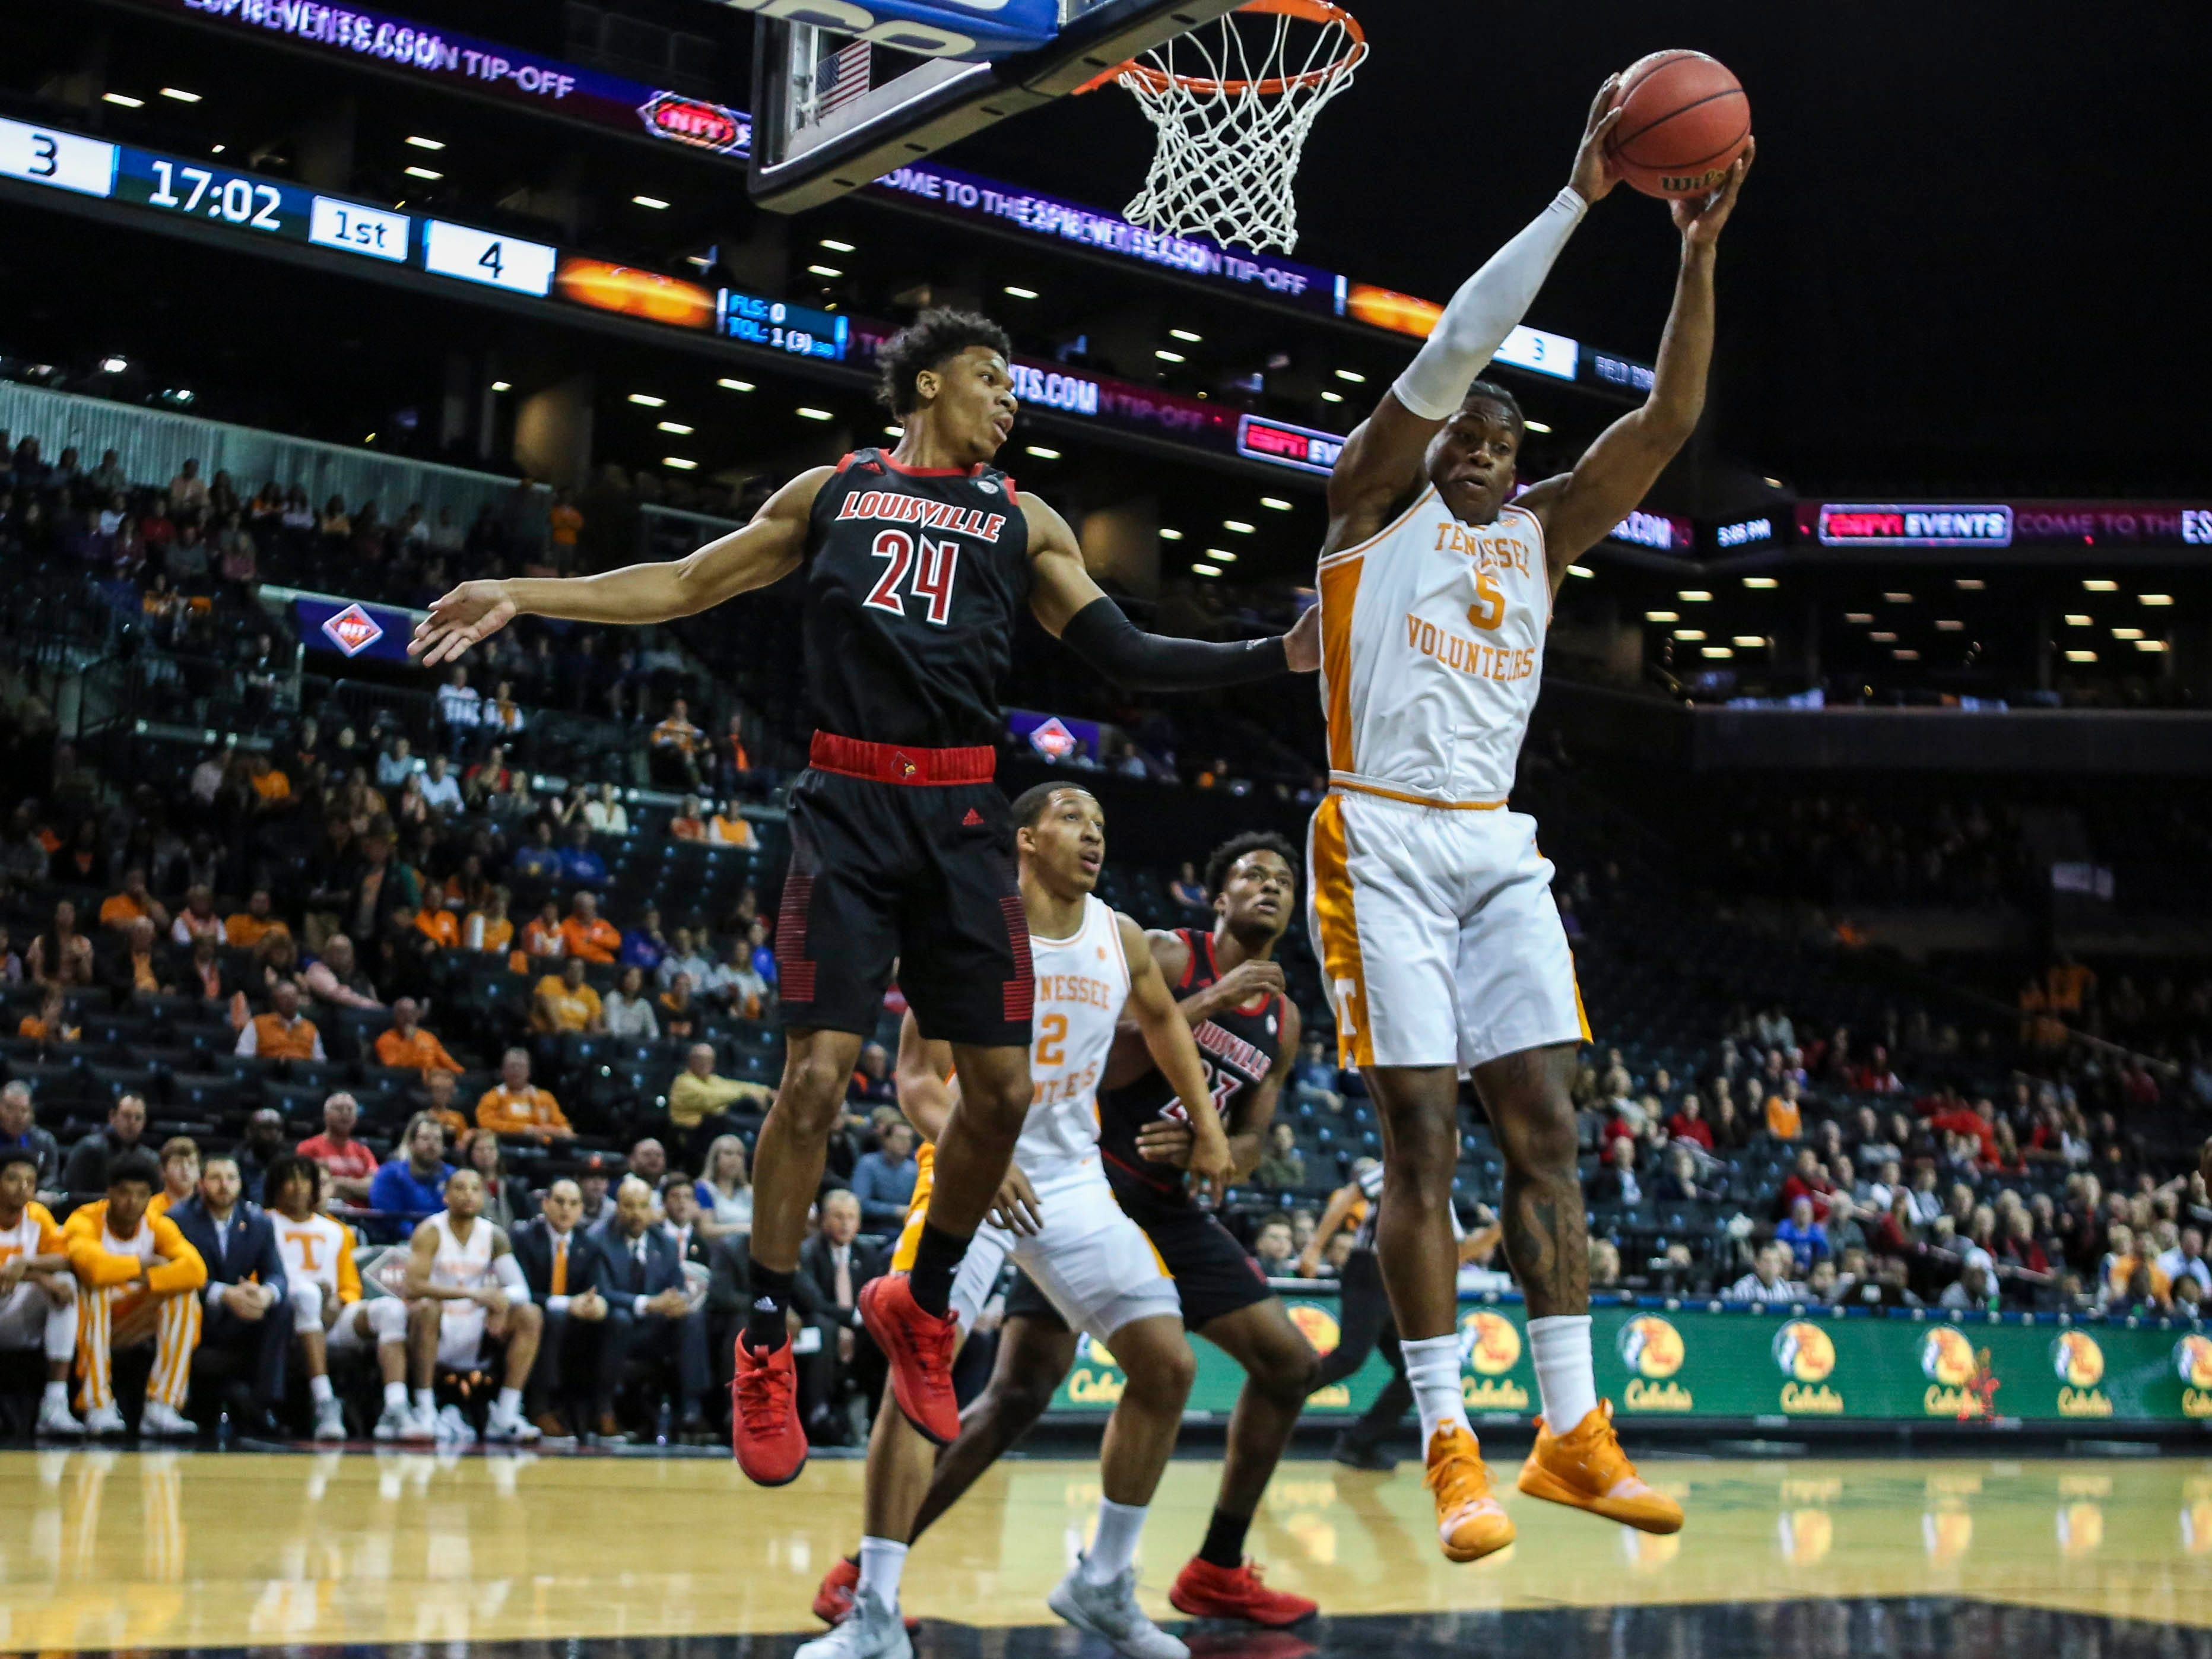 Nov 21, 2018; Brooklyn, NY, USA; Tennessee Volunteers guard Admiral Schfield (5) grabs a rebound in the first half against the Louisville Cardinals during the NIT Tipoff at Barclays Center. Mandatory Credit: Wendell Cruz-USA TODAY Sports